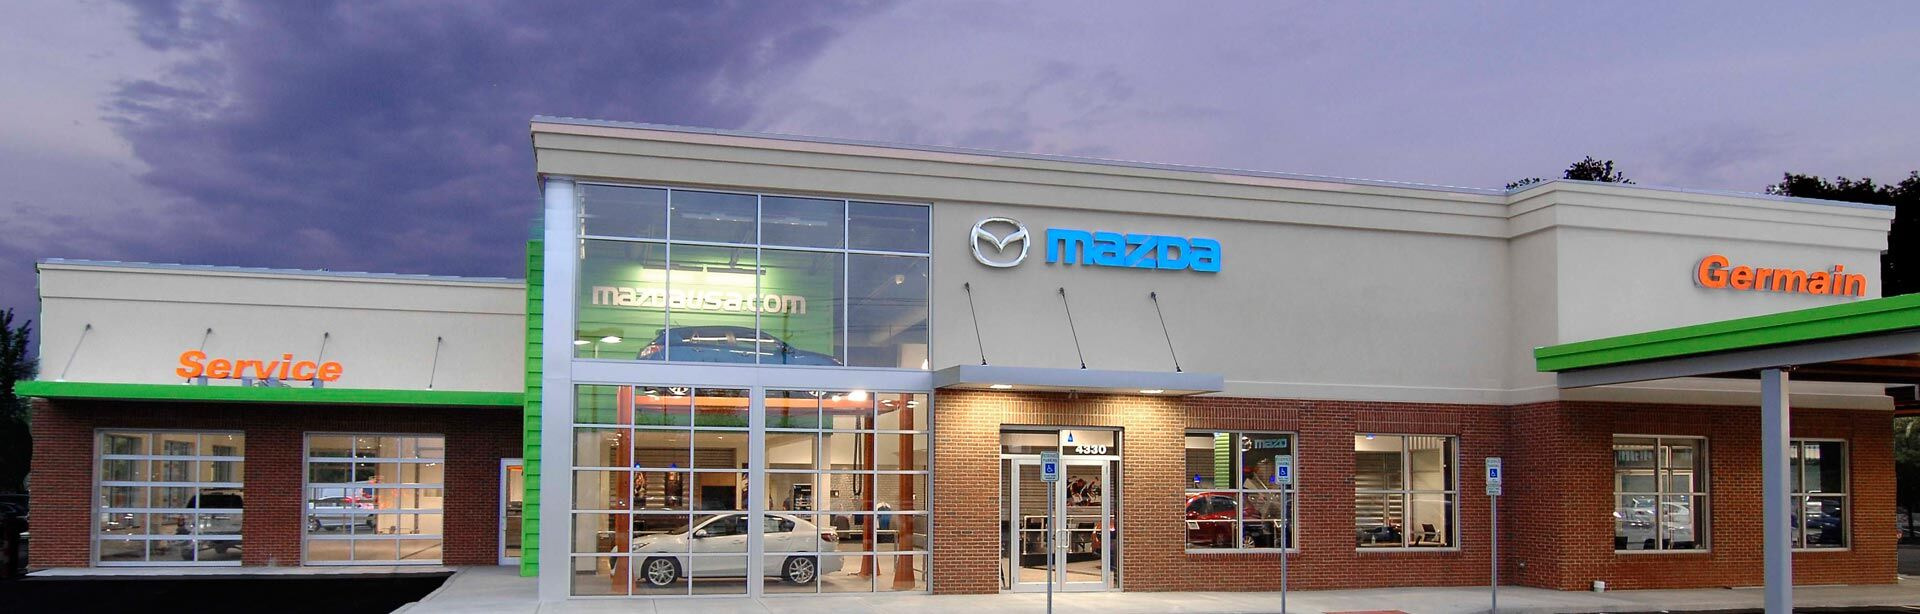 Ford Lexus Mazda Nissan Dealerships Columbus Oh Used